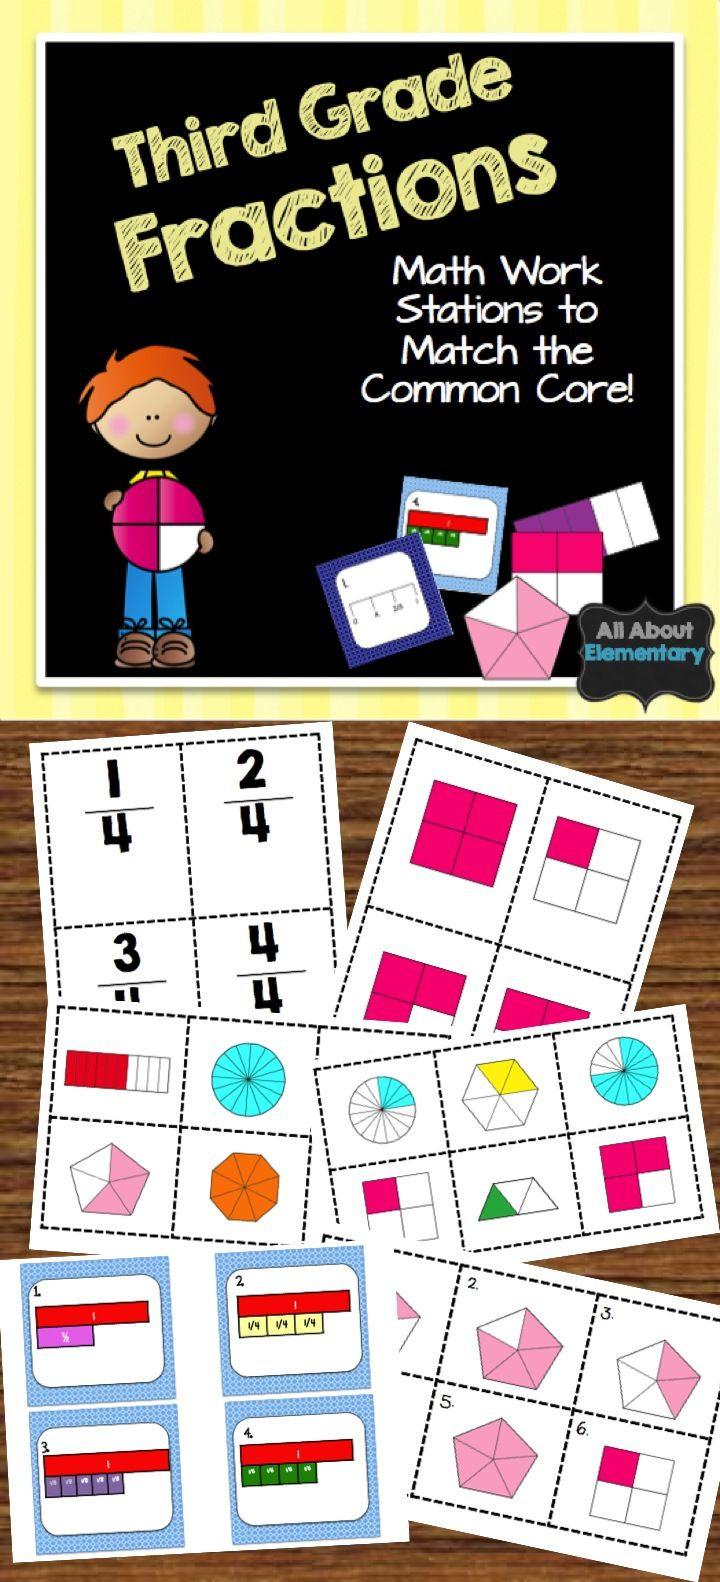 Worksheet 2nd Grade Math Tutoring worksheet 2nd grade math tutoring mikyu free 1000 images about fractions on pinterest work the march fractions